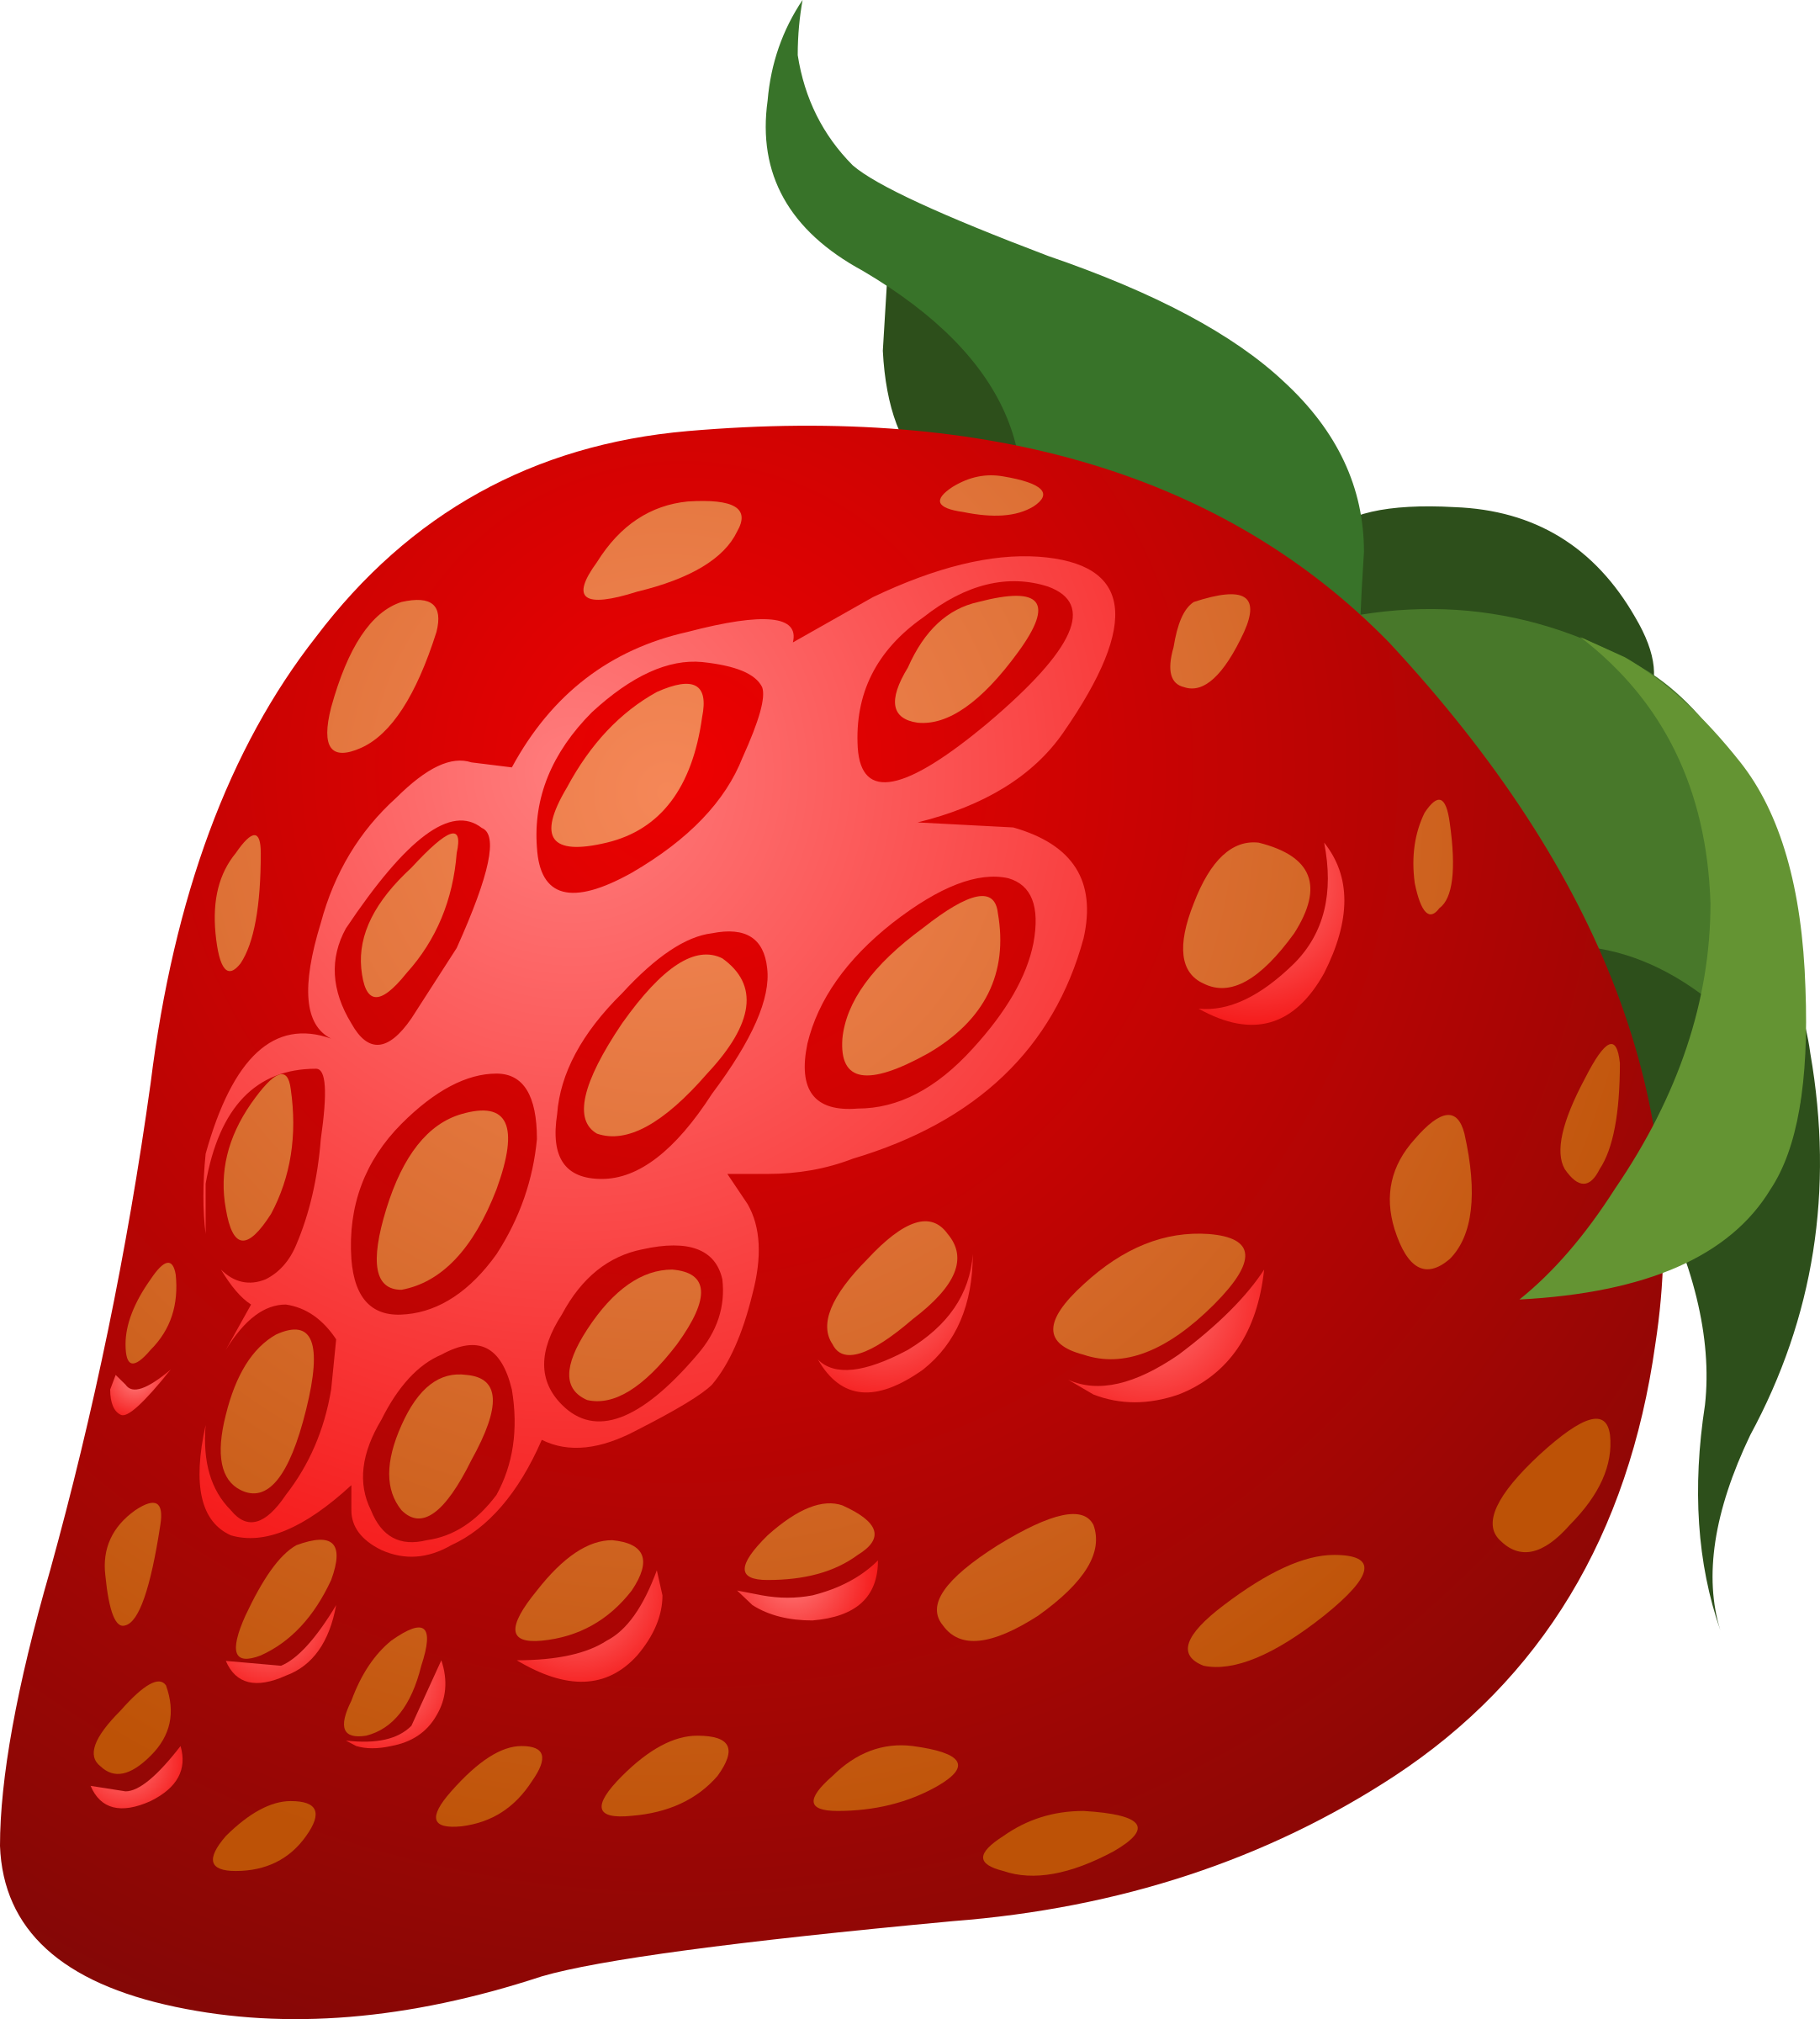 food strawberry by glitch this glitch clipart is about food